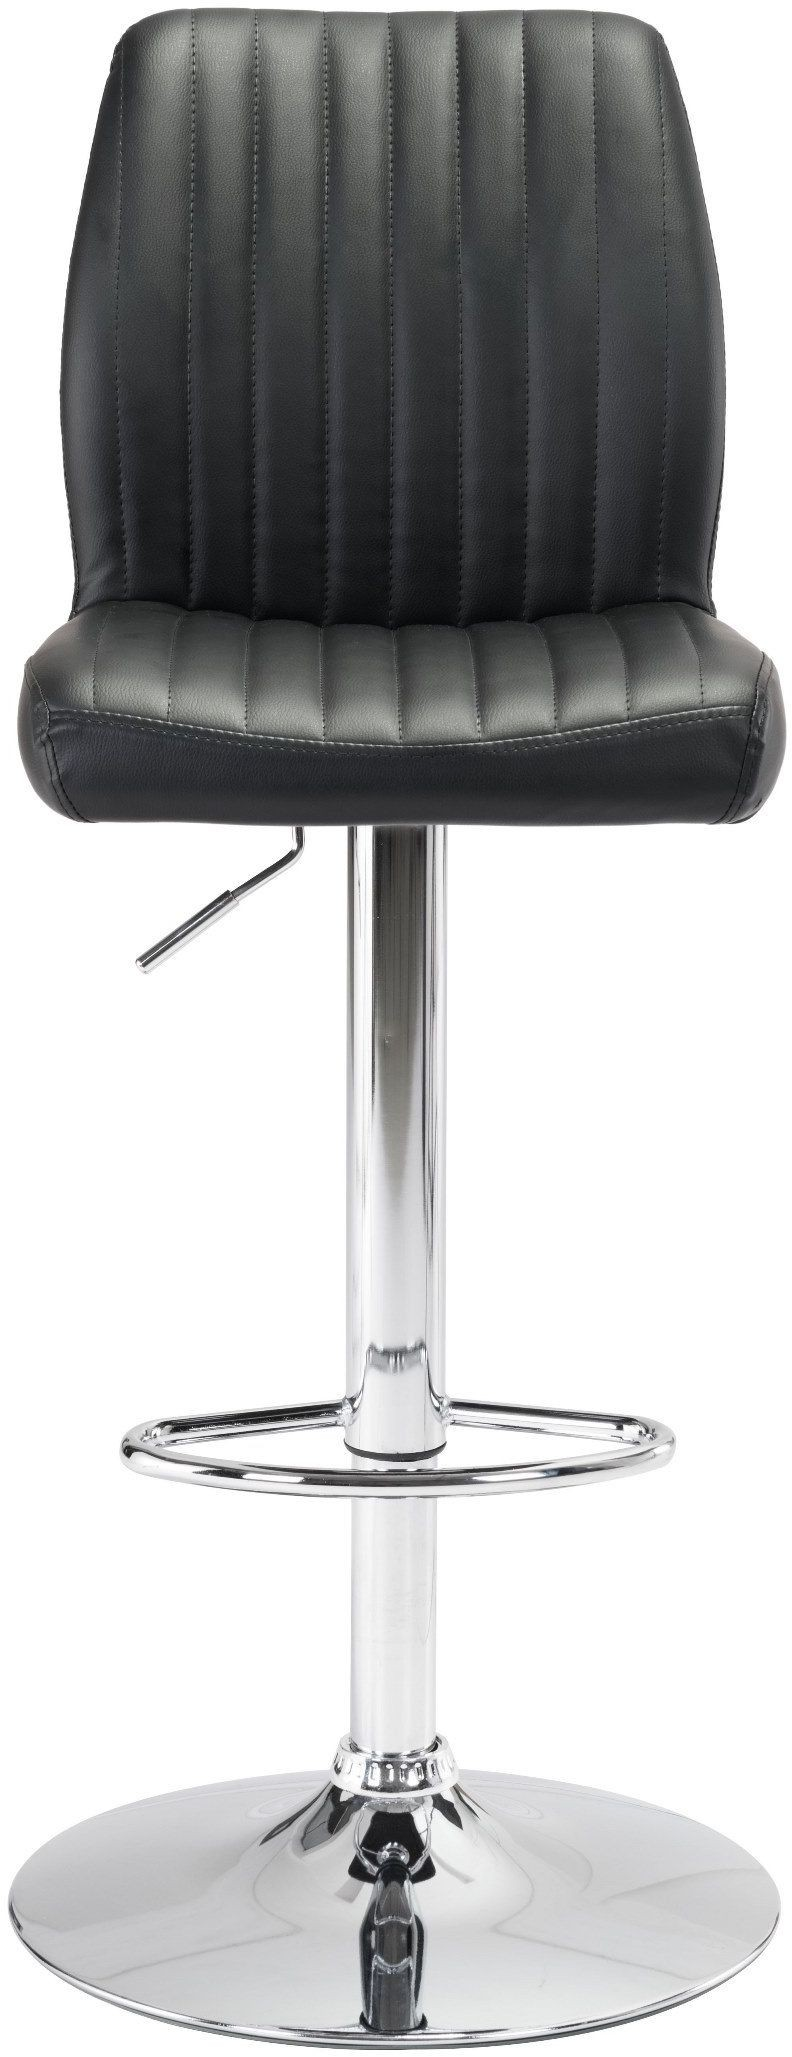 zuo willful bar chair